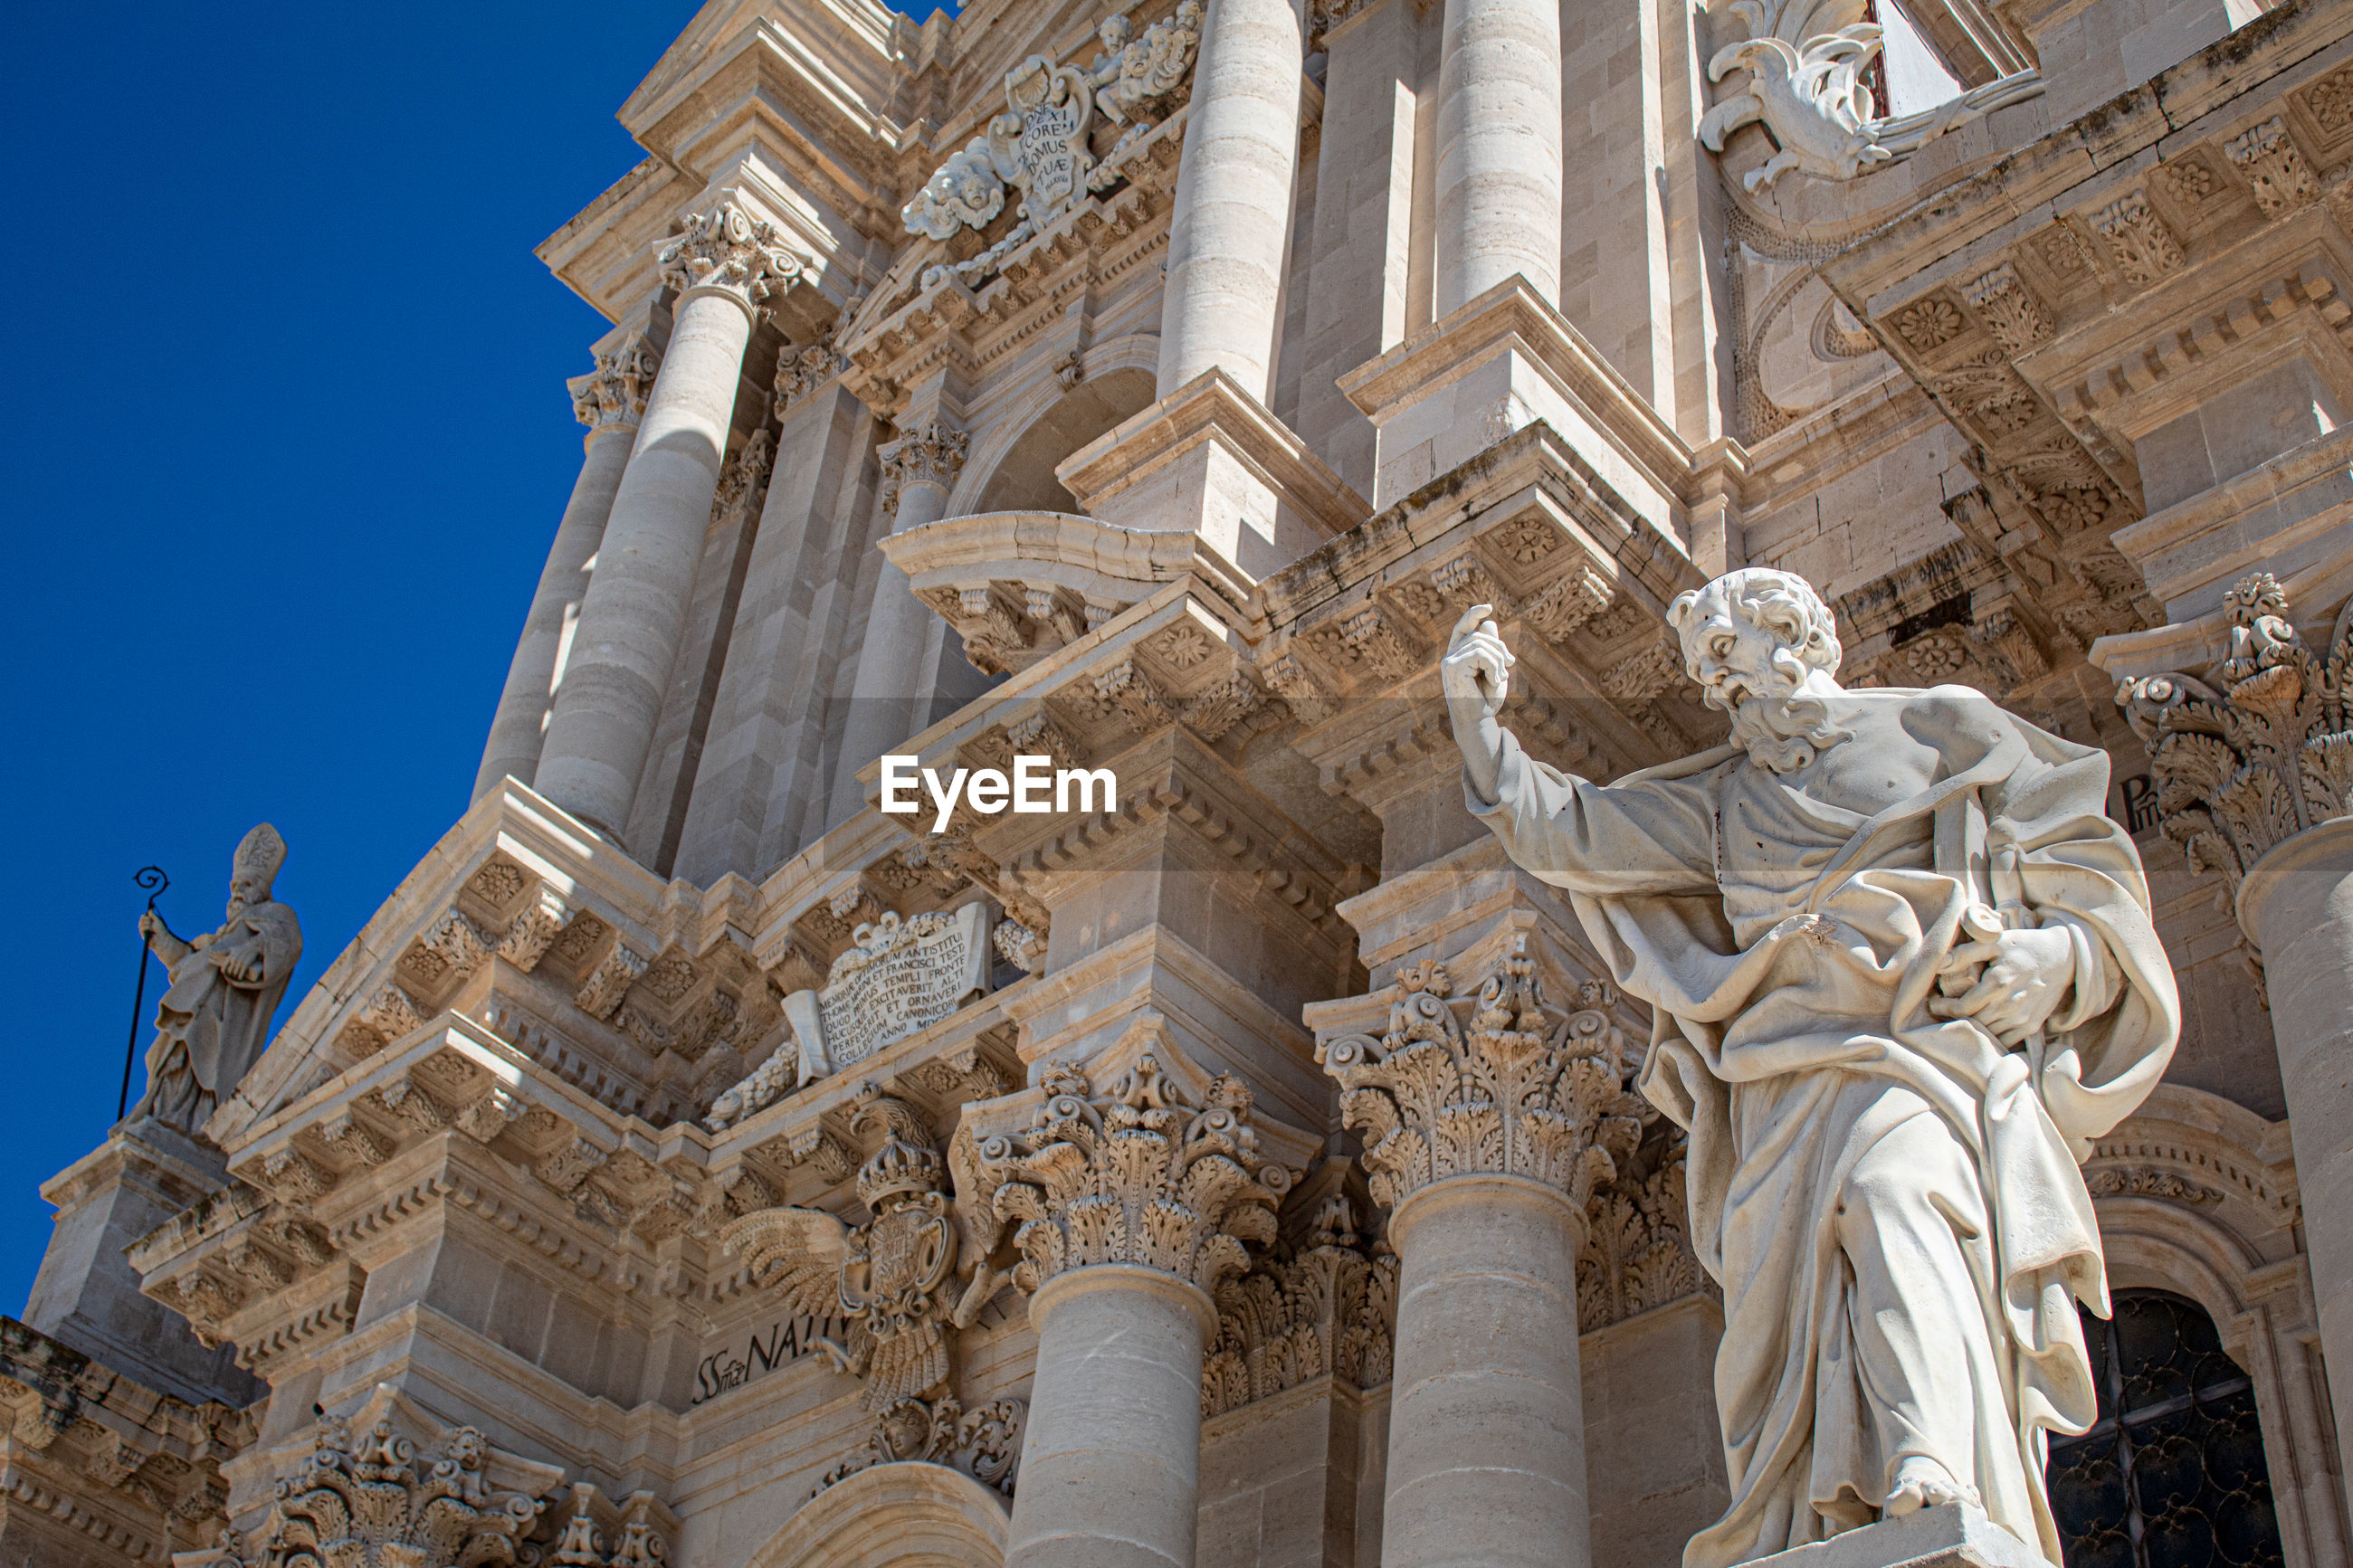 A statue of the ortigia cathedral with columns behind it, siracusa.